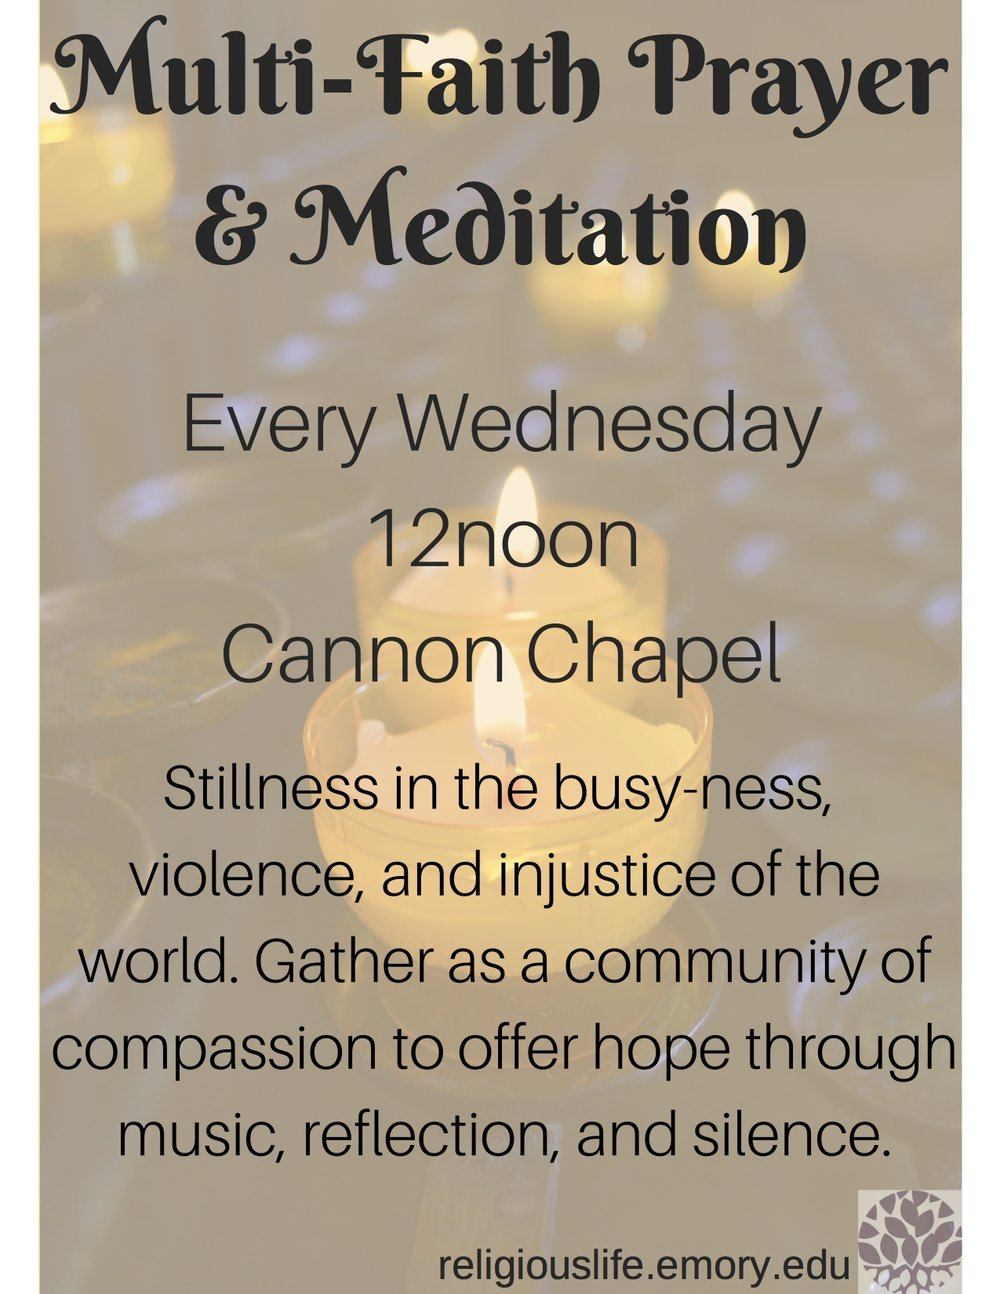 Weekly Multi-Faith Prayer & Meditation.jpg